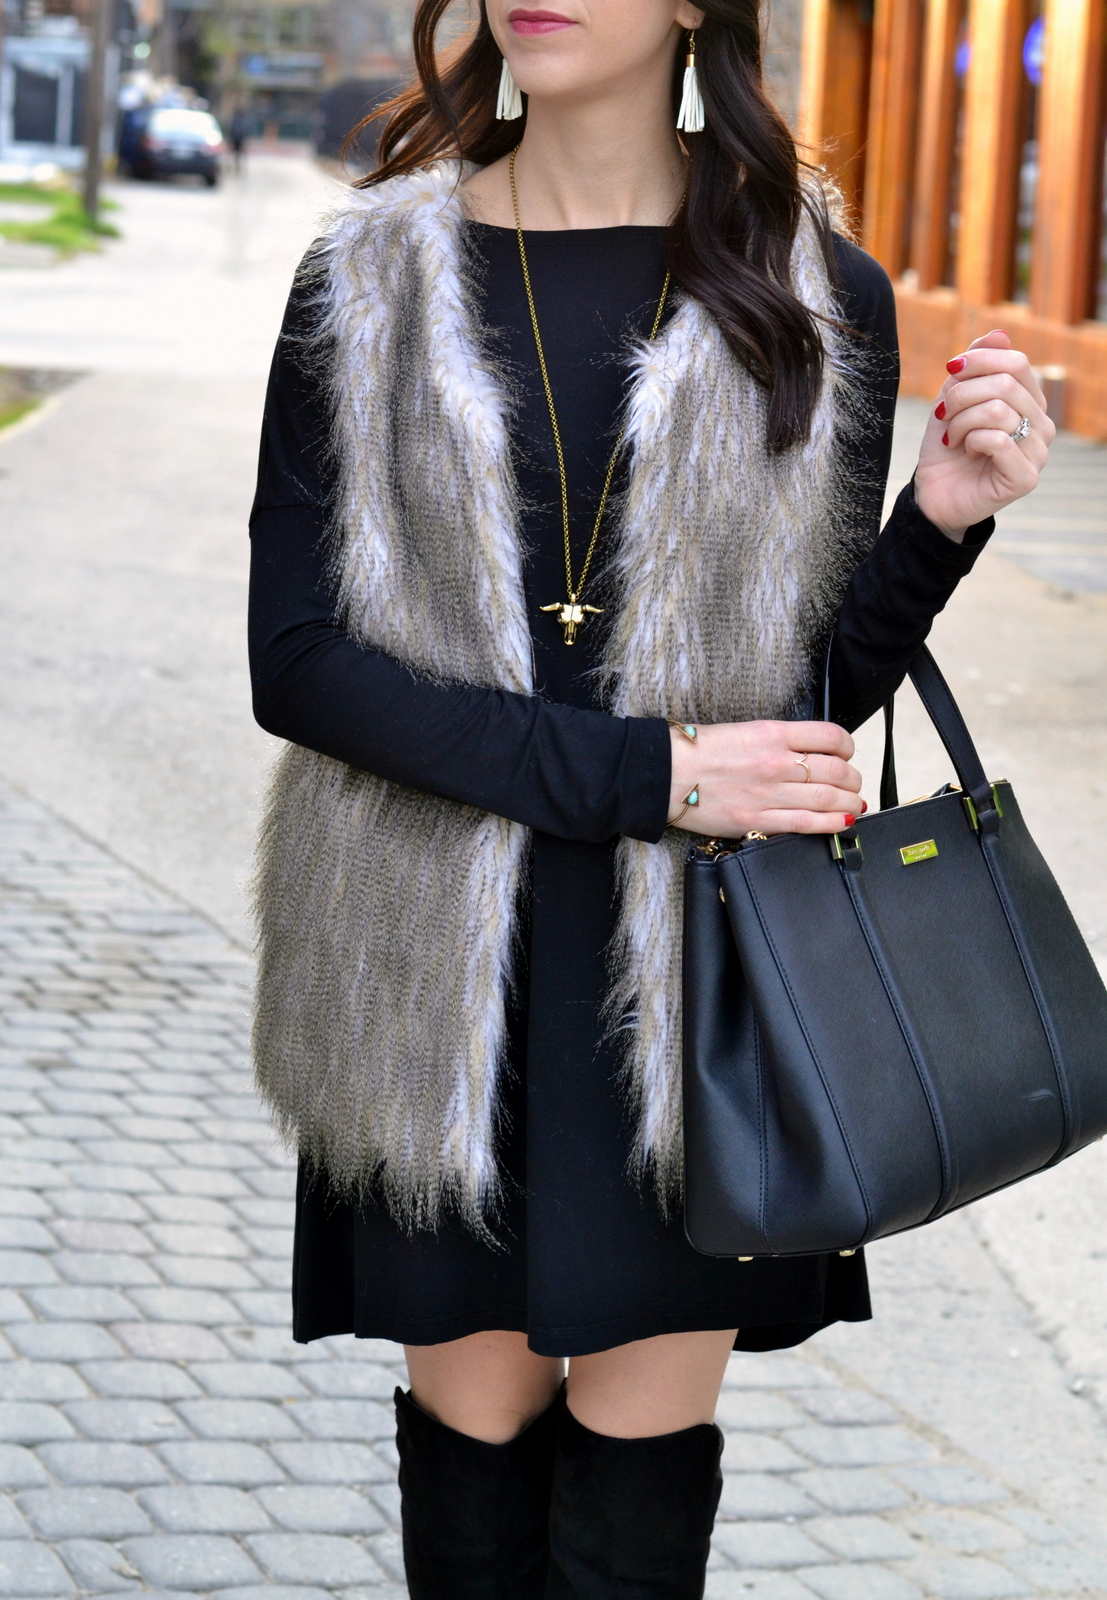 Tassel Earrings_Skull Necklace_Fur Vest_Kate Spade